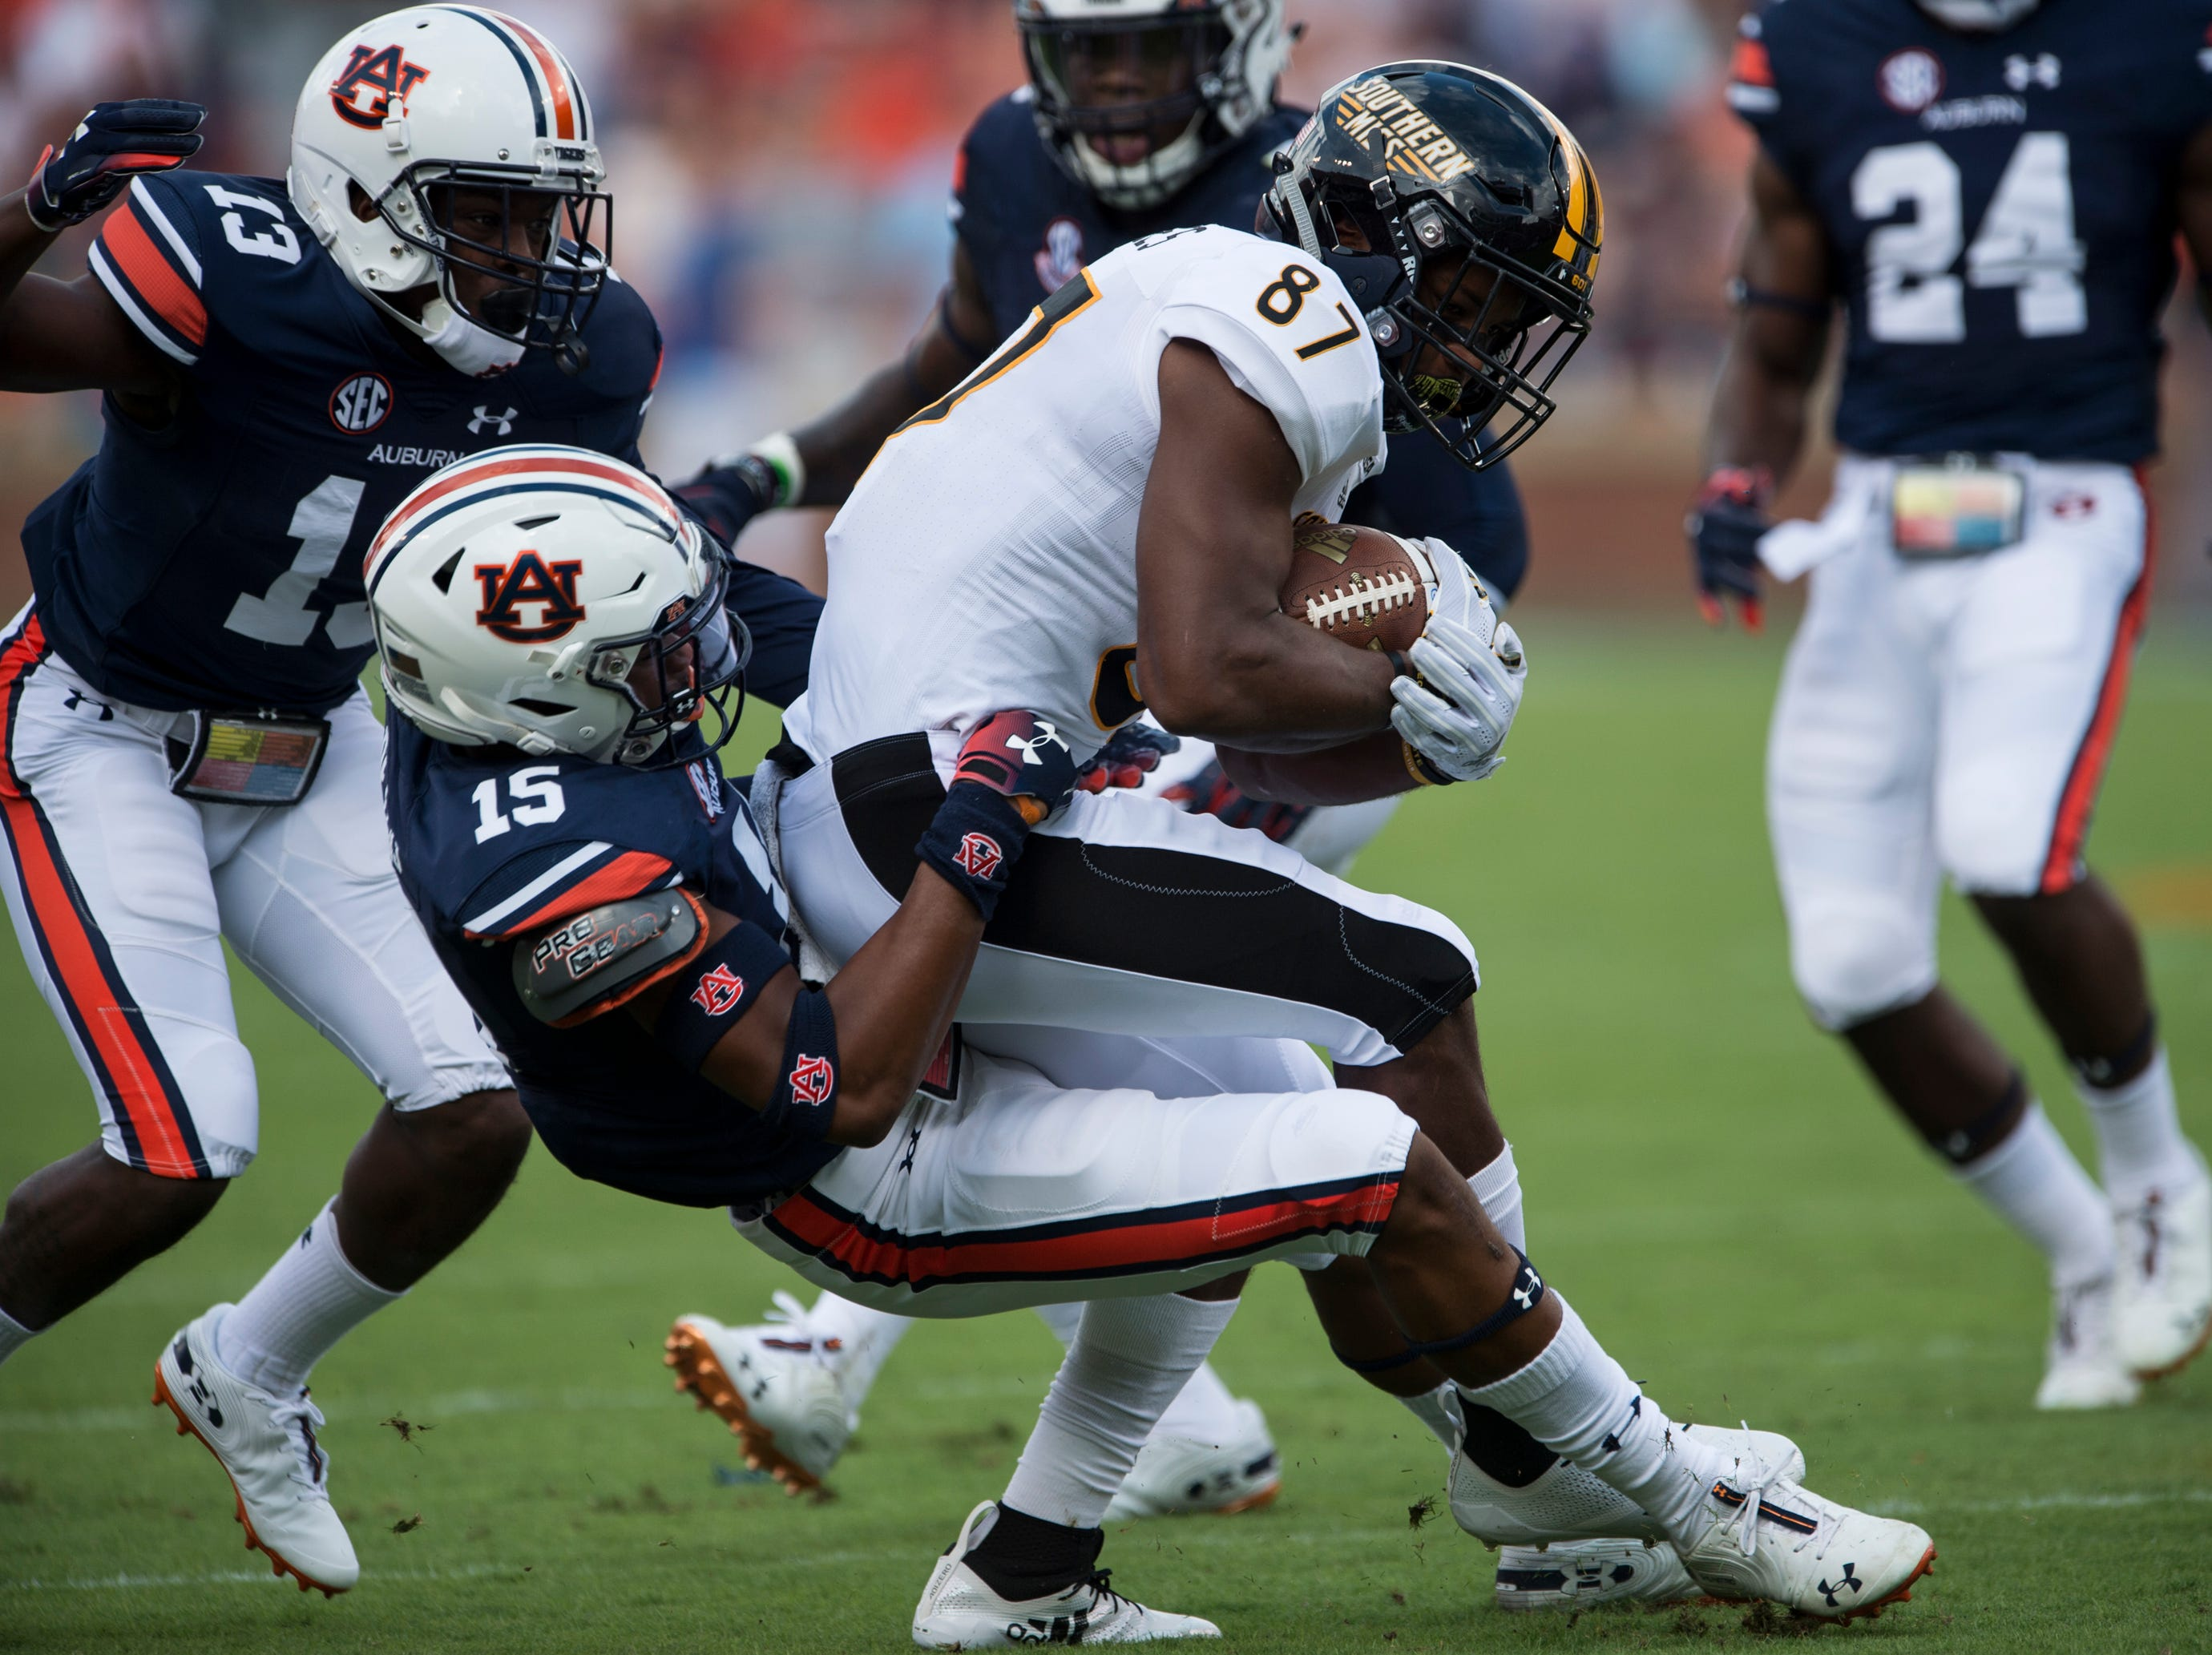 Auburn's Jordyn Peters (15) pulls down Southern Miss' Tim Jones (87) at Jordan-Hare Stadium in Auburn, Ala., on Saturday, Sept. 29, 2018. Auburn leads Southern Miss 14-3, the game went into a weather delay with 4:27 left in the second quarter.